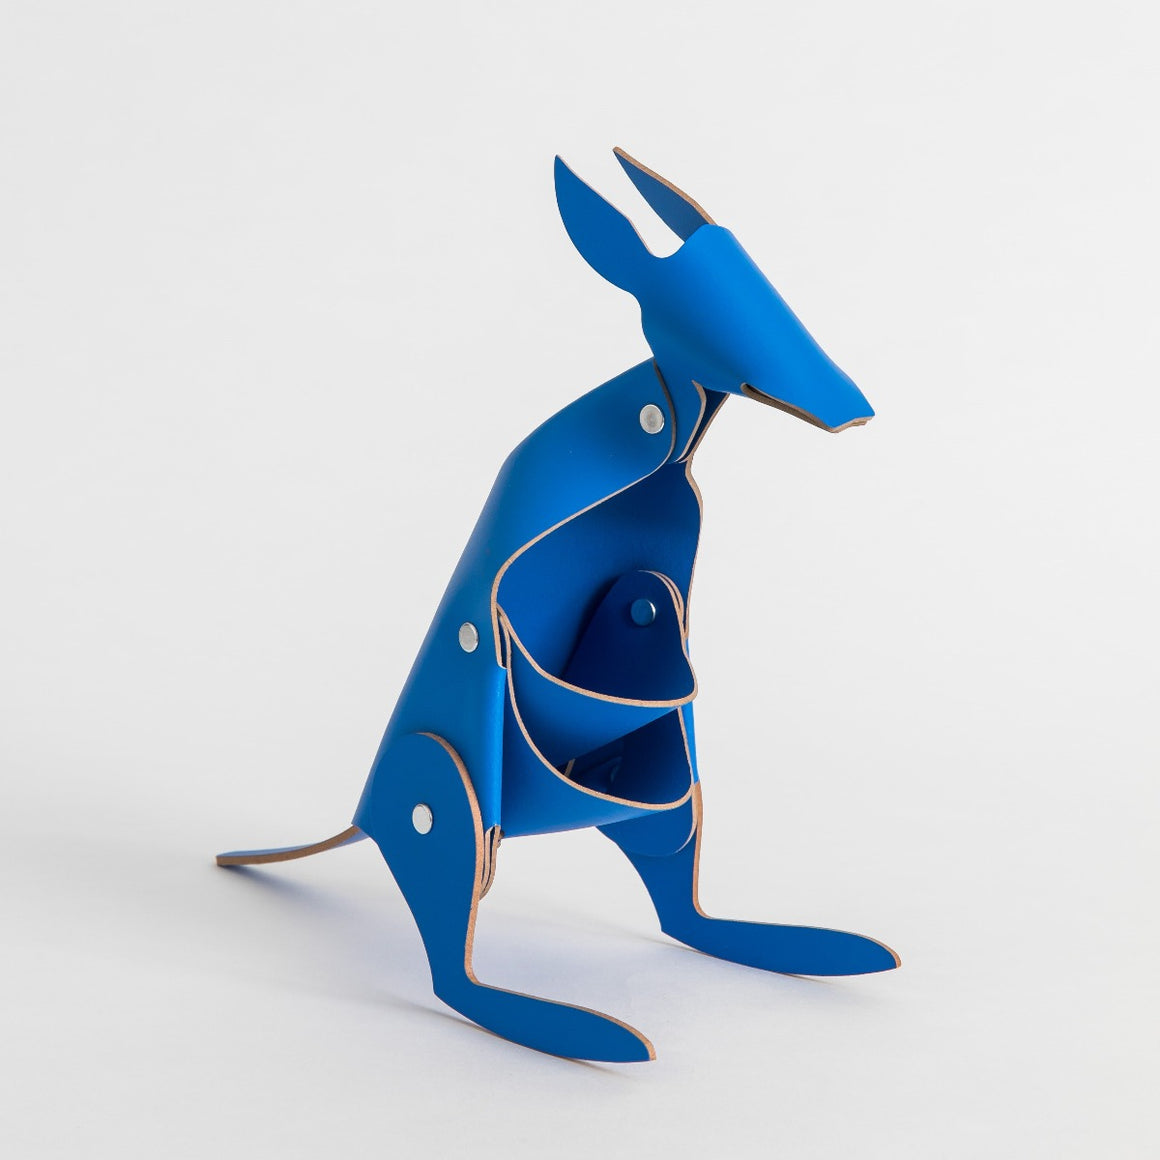 Leather Desk Kangaroo in the colour blue